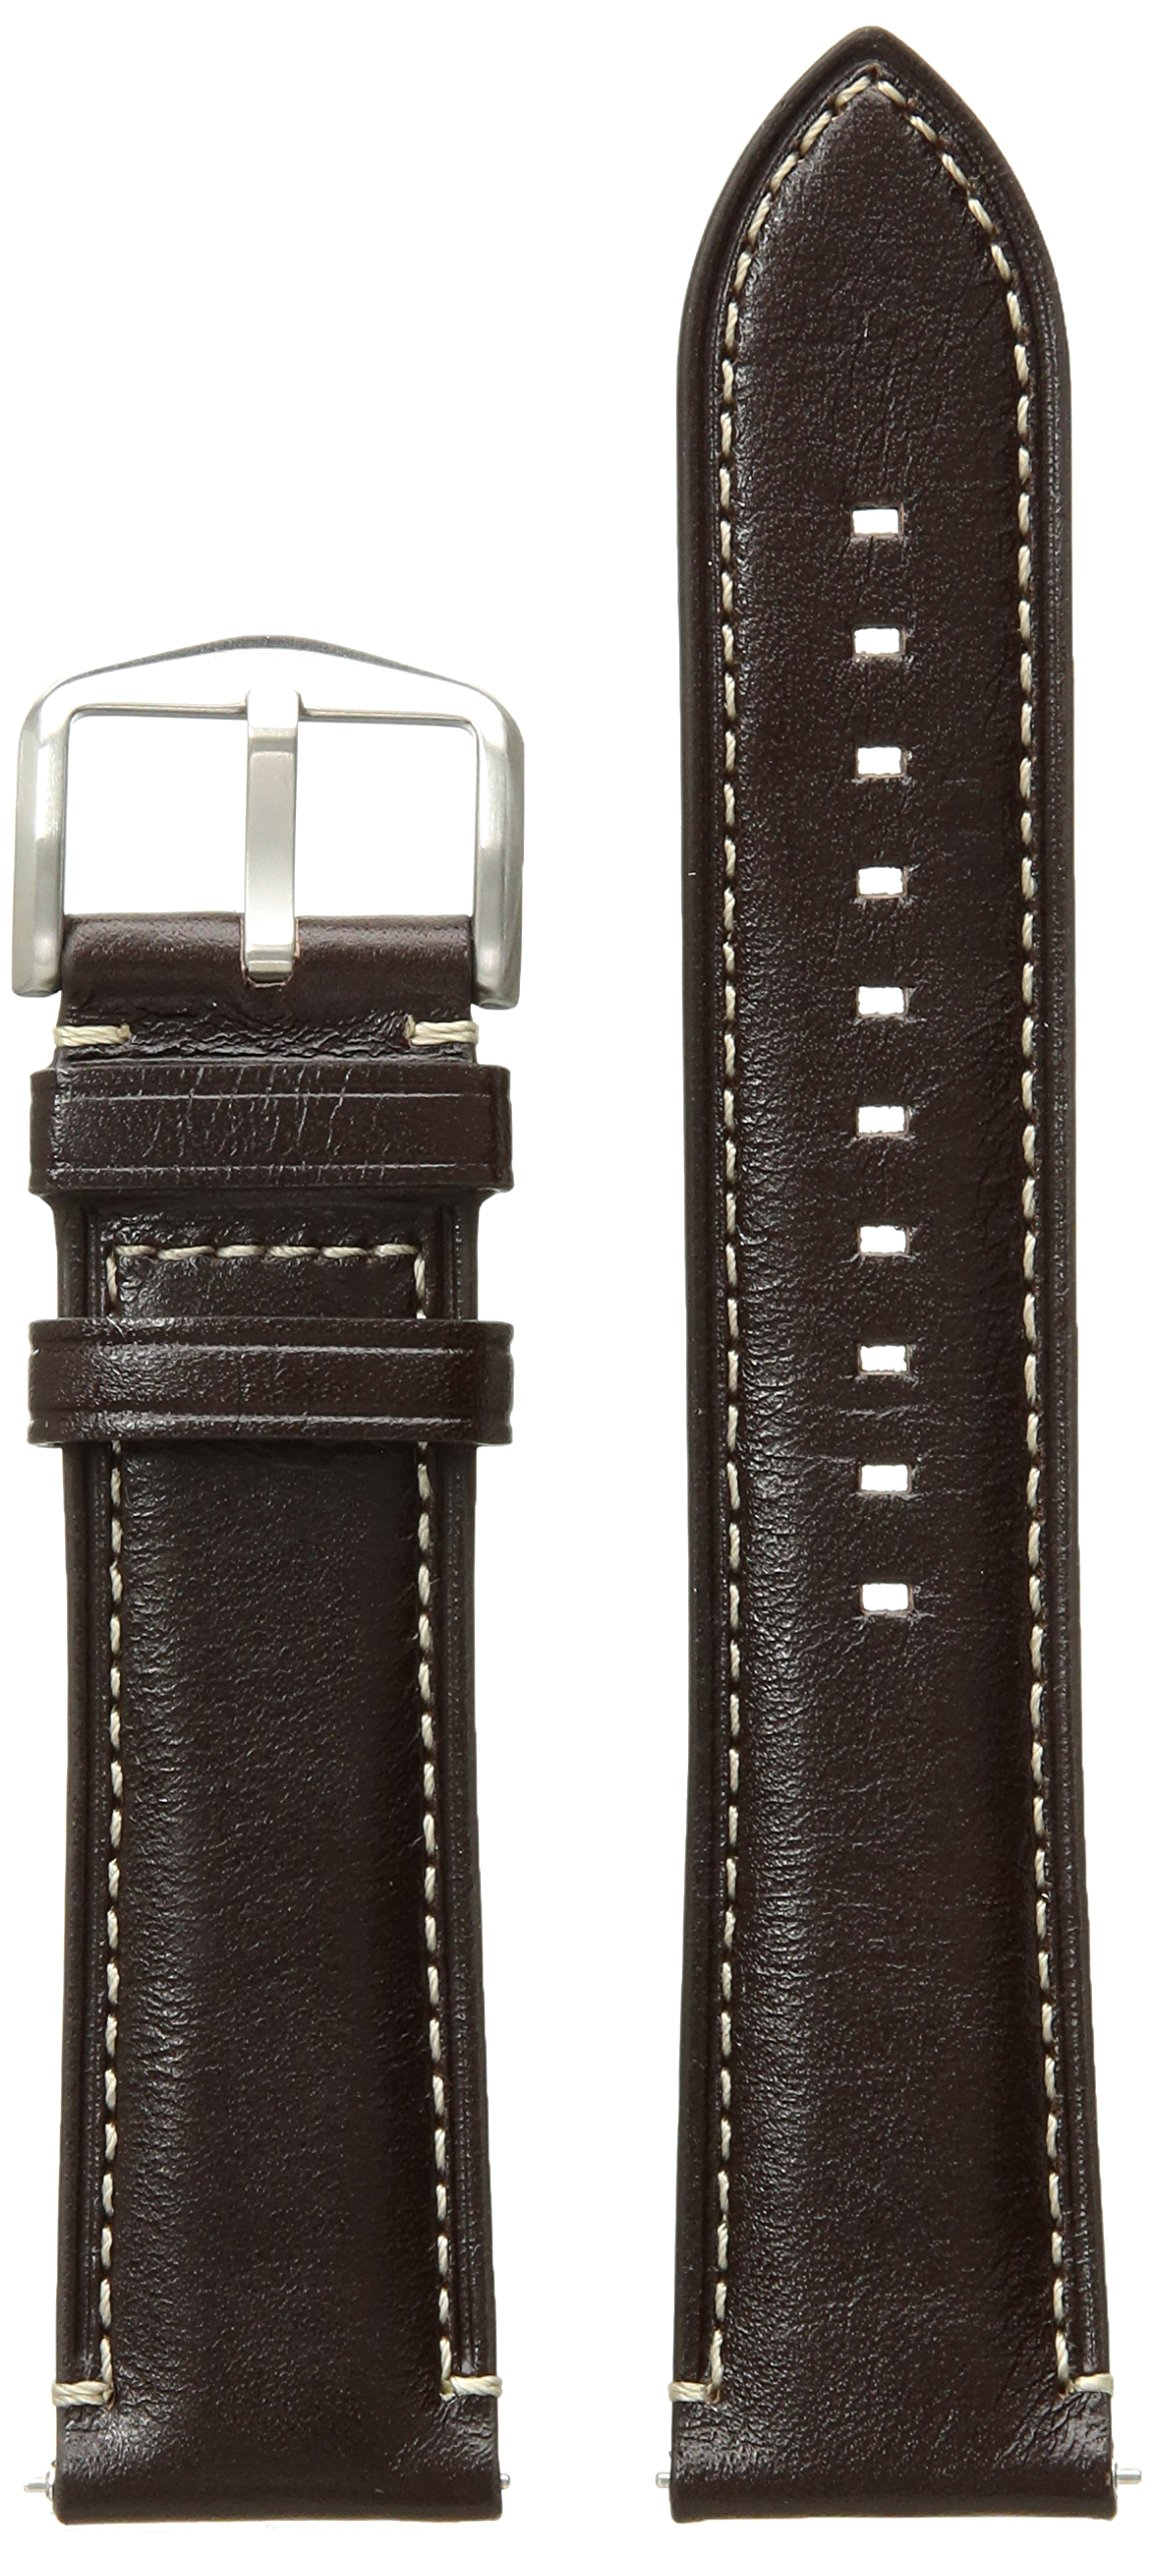 Fossil S221245 22mm Leather Calfskin Dark Brown Watch Strap by Fossil